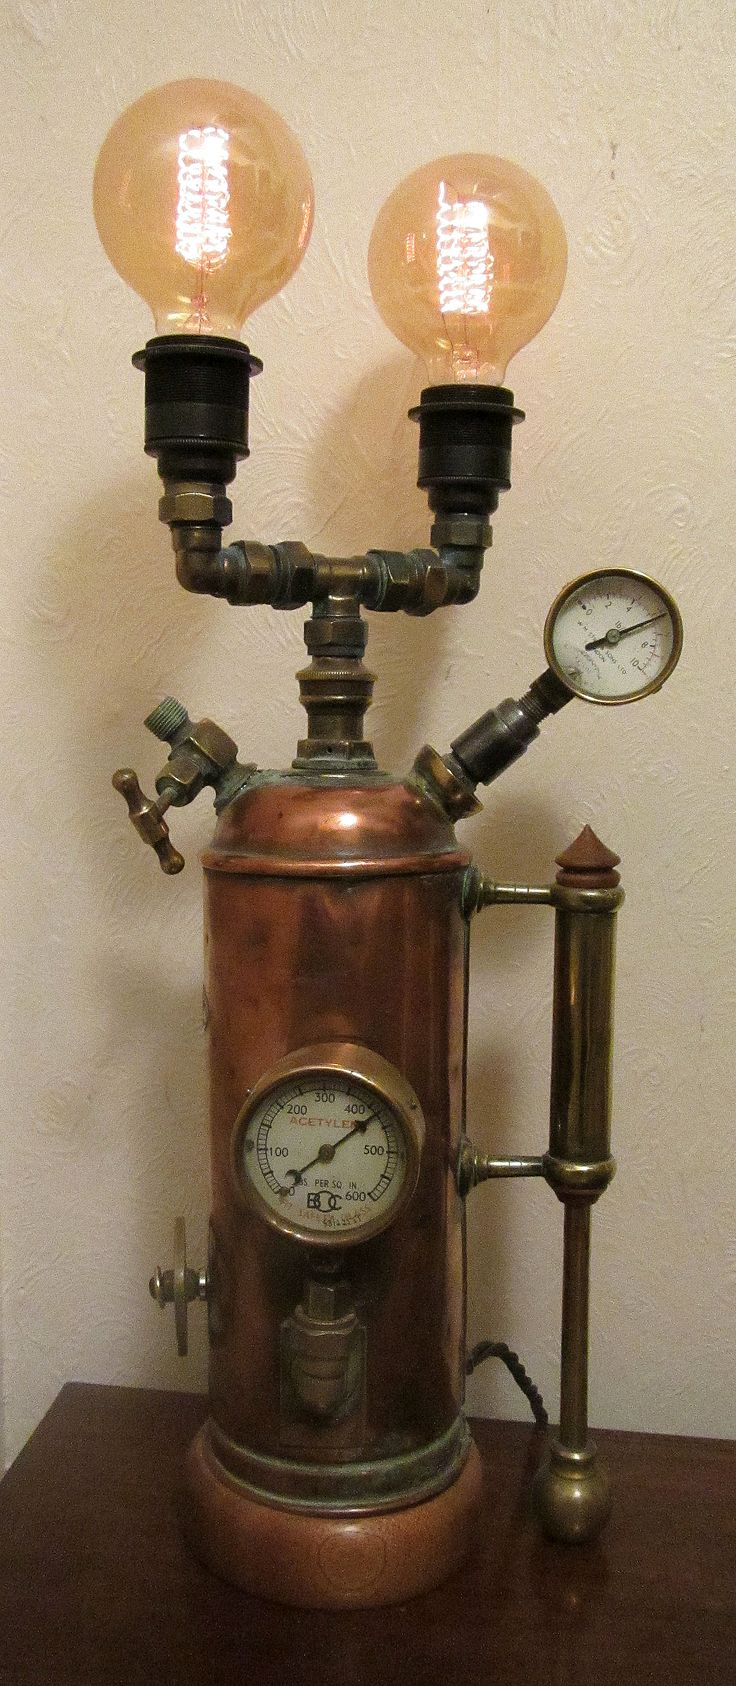 Steampunk lamp by John Grimshaw.